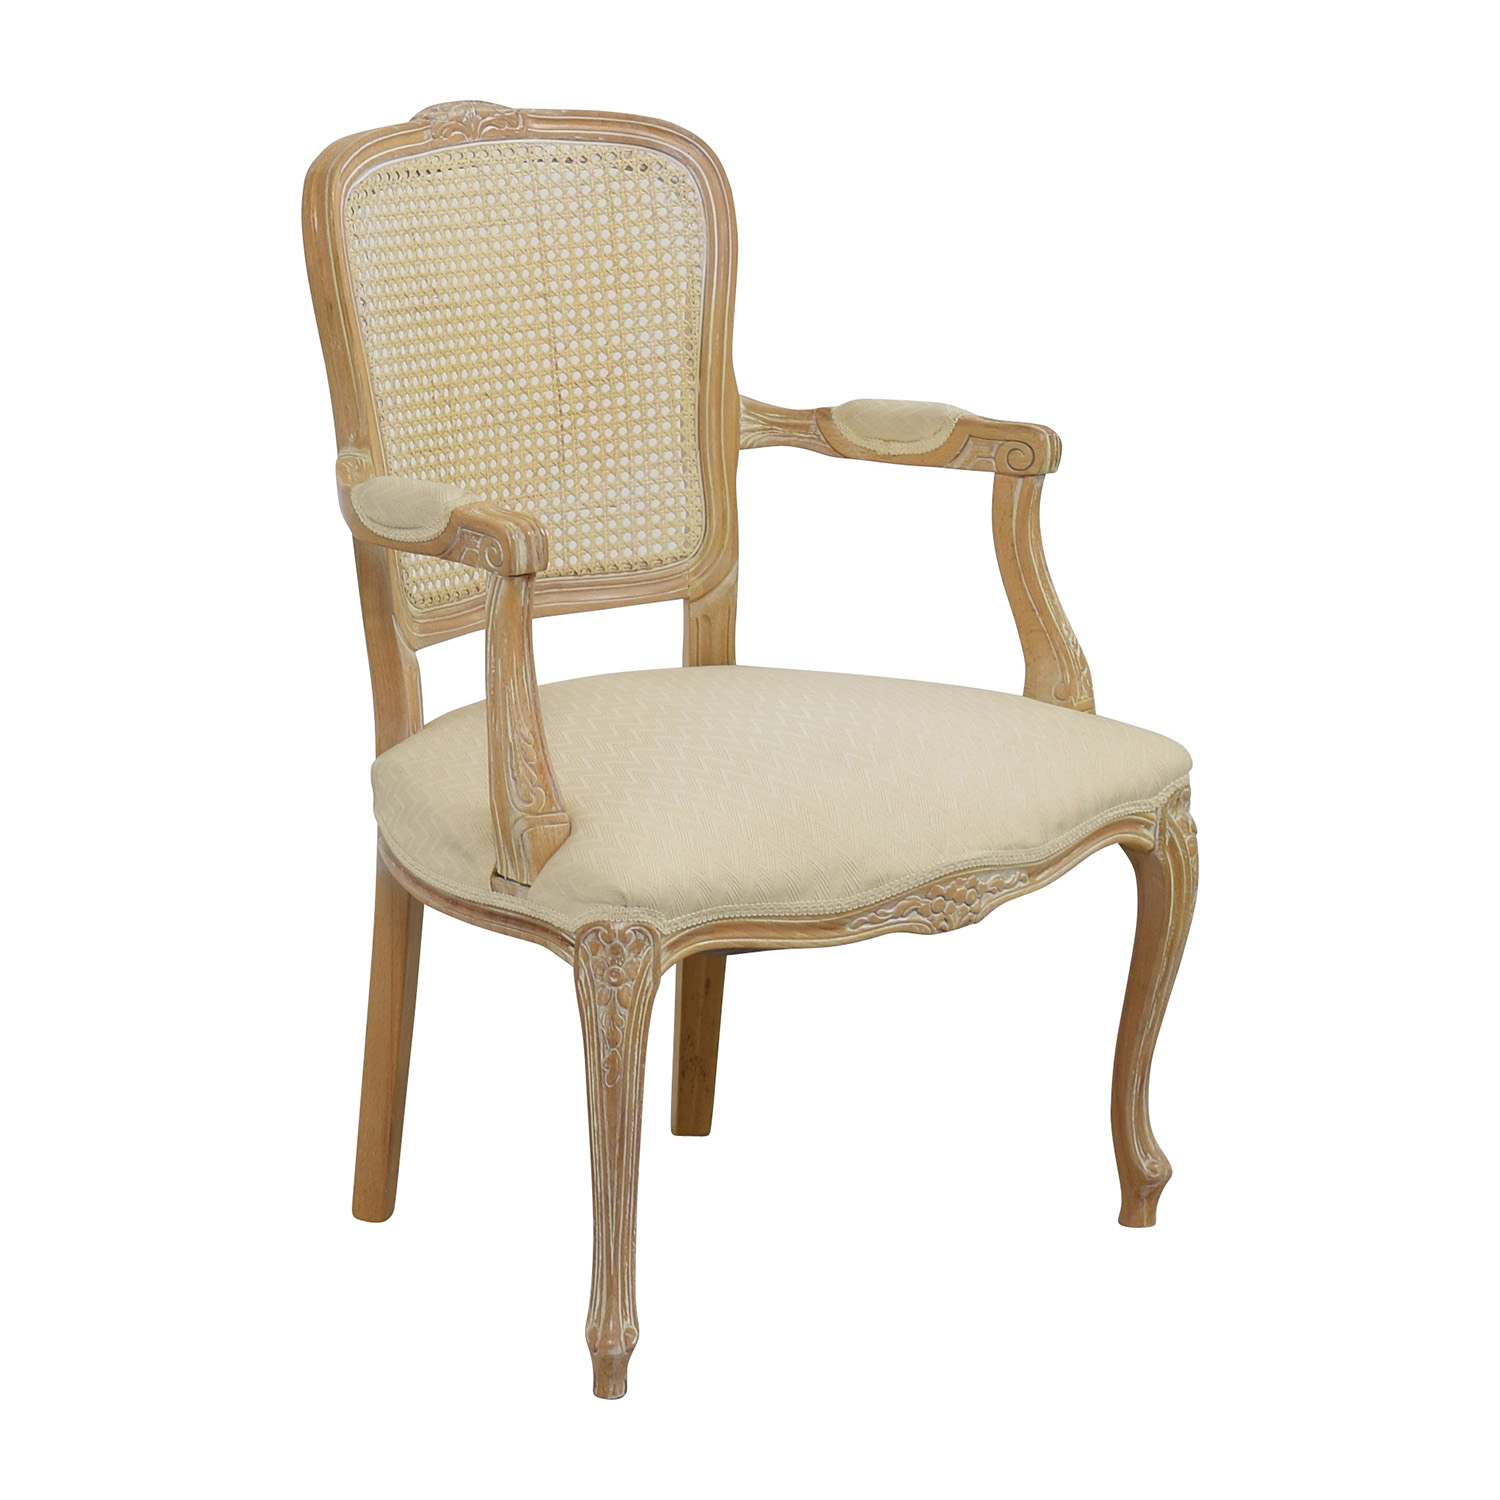 lexington dining chairs marble table and 68% off - link-taylor french provincial creme chair /